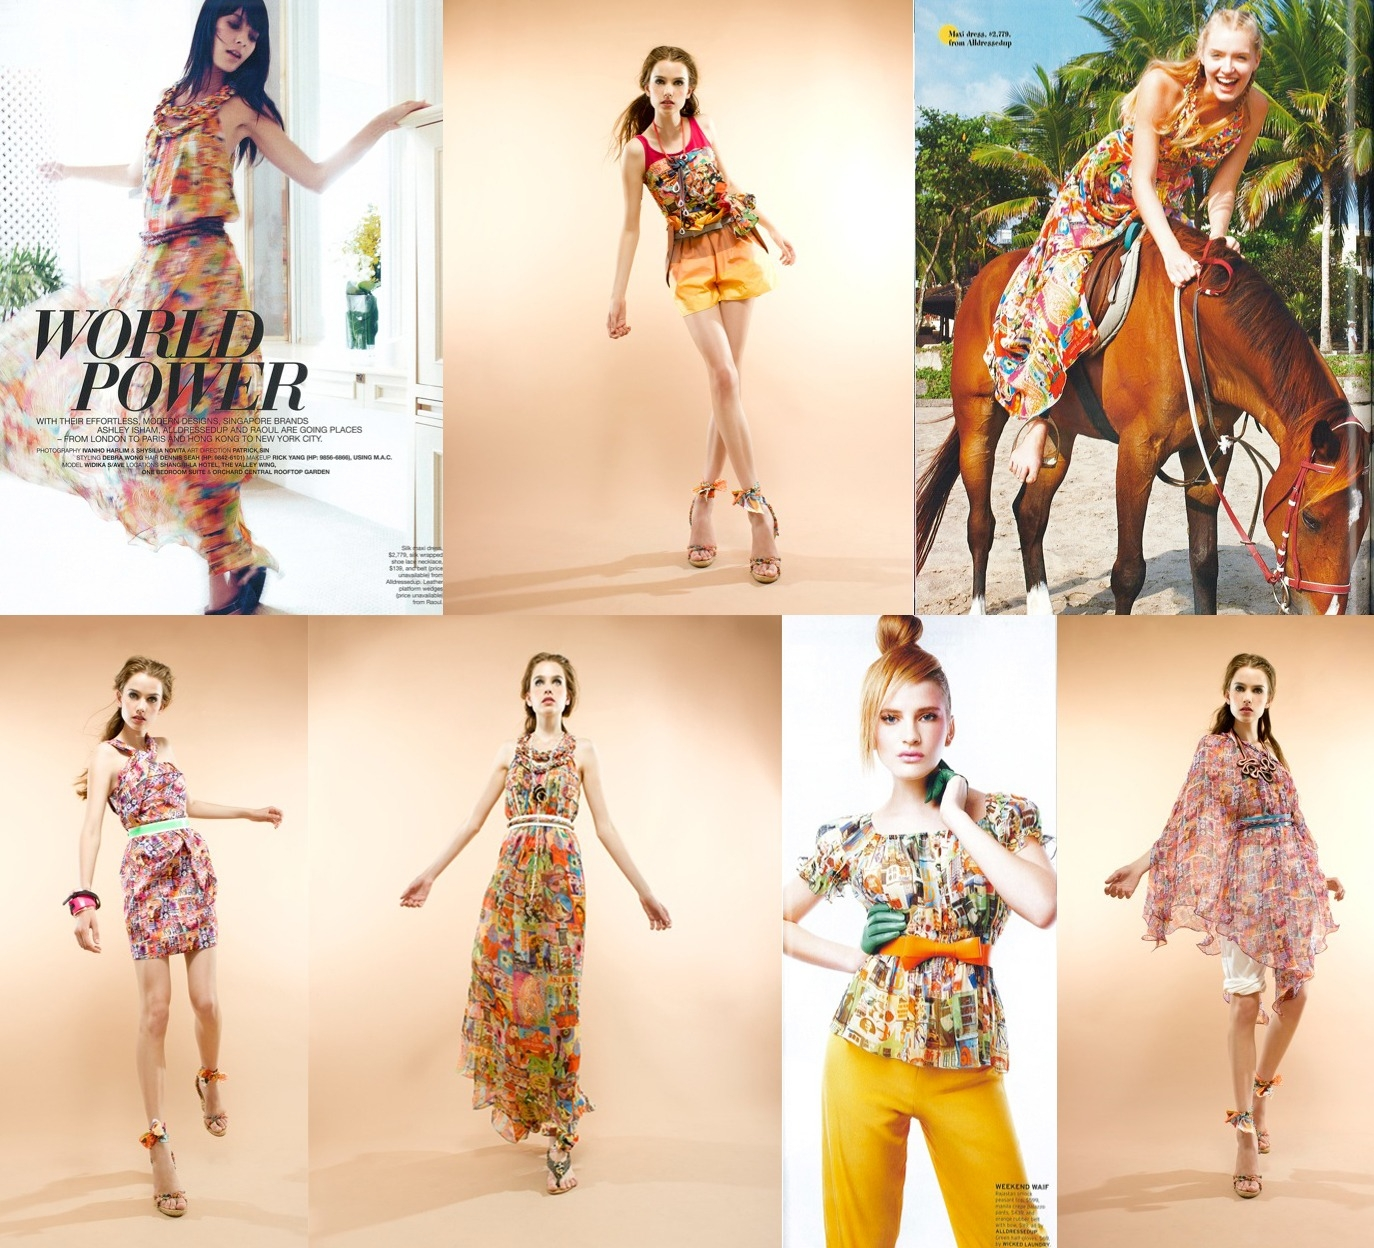 Licensing collaboration with Fashion House 'ALLDRESSEDUP'.  This collection was shown in 25 countries.